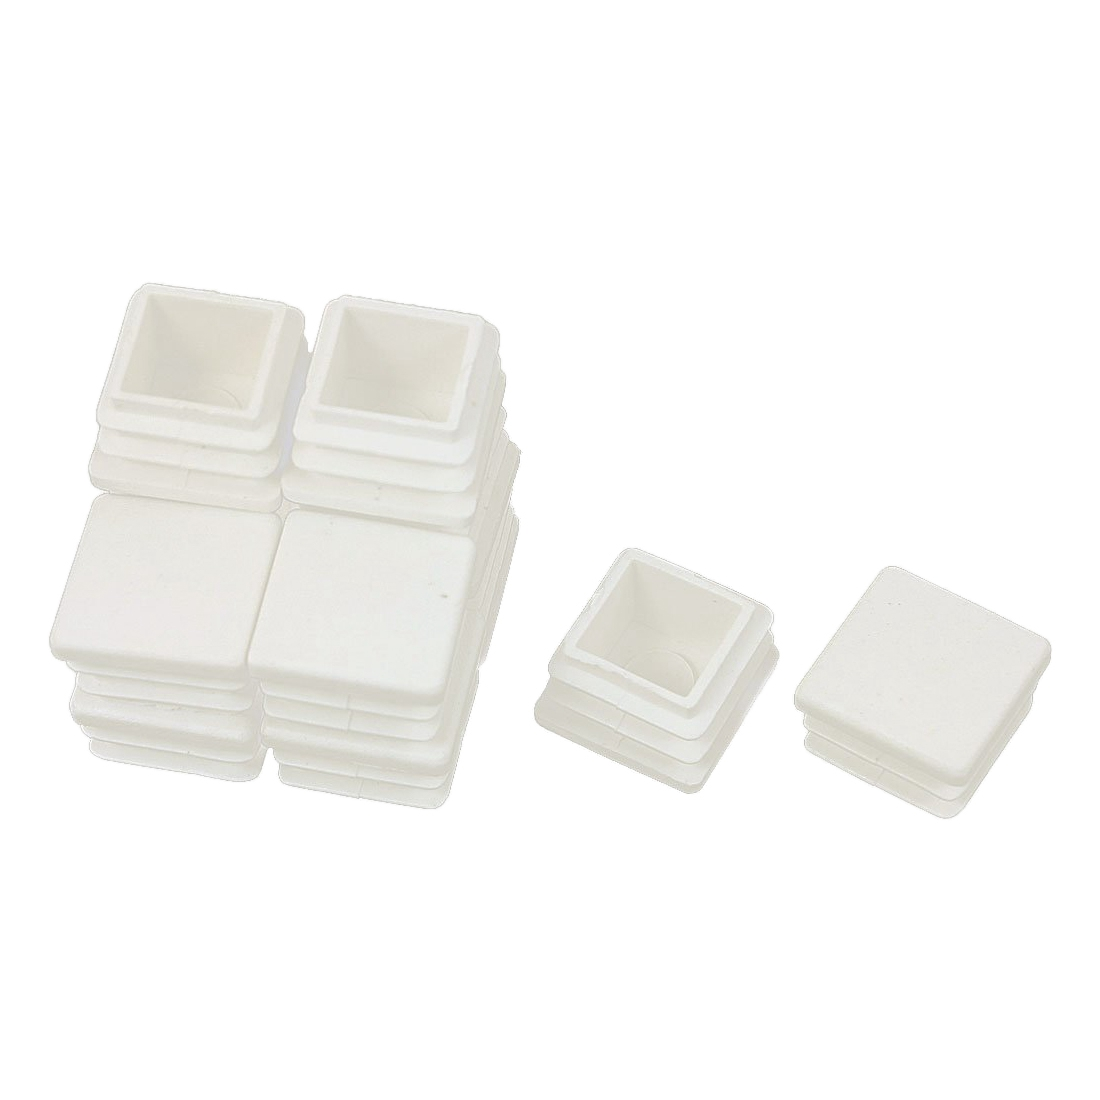 20 mm x 20 mm plastic white end caps blanking version of the caps spare caps accessories for professional square tube inserts веледа масло массажное с арникой 50мл